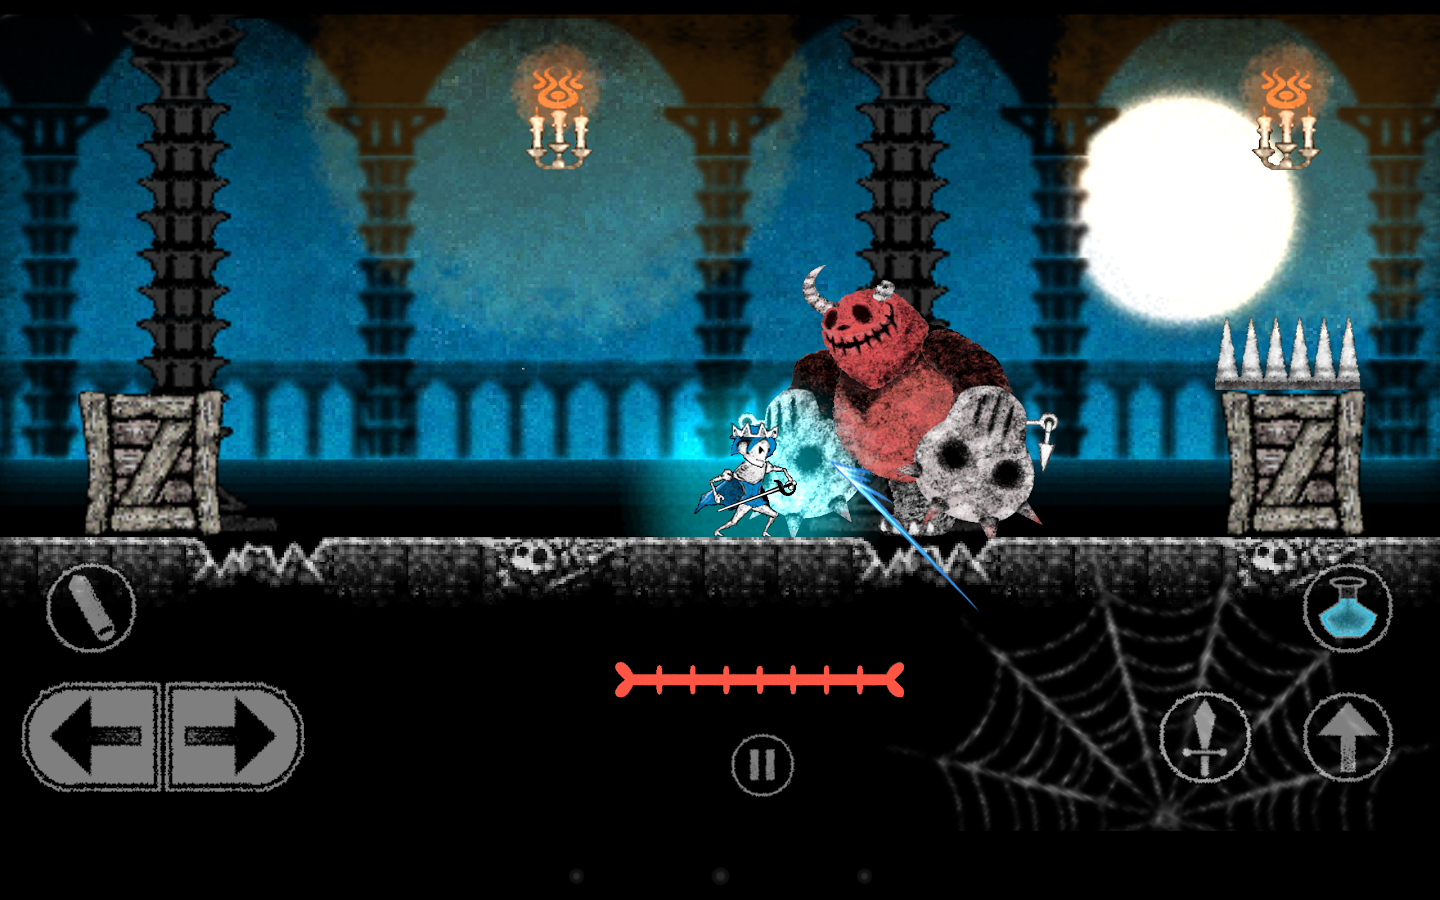 [New Game] Dokuro Is A Platformer About An Animated Skeleton, A Princess, And Charcoal